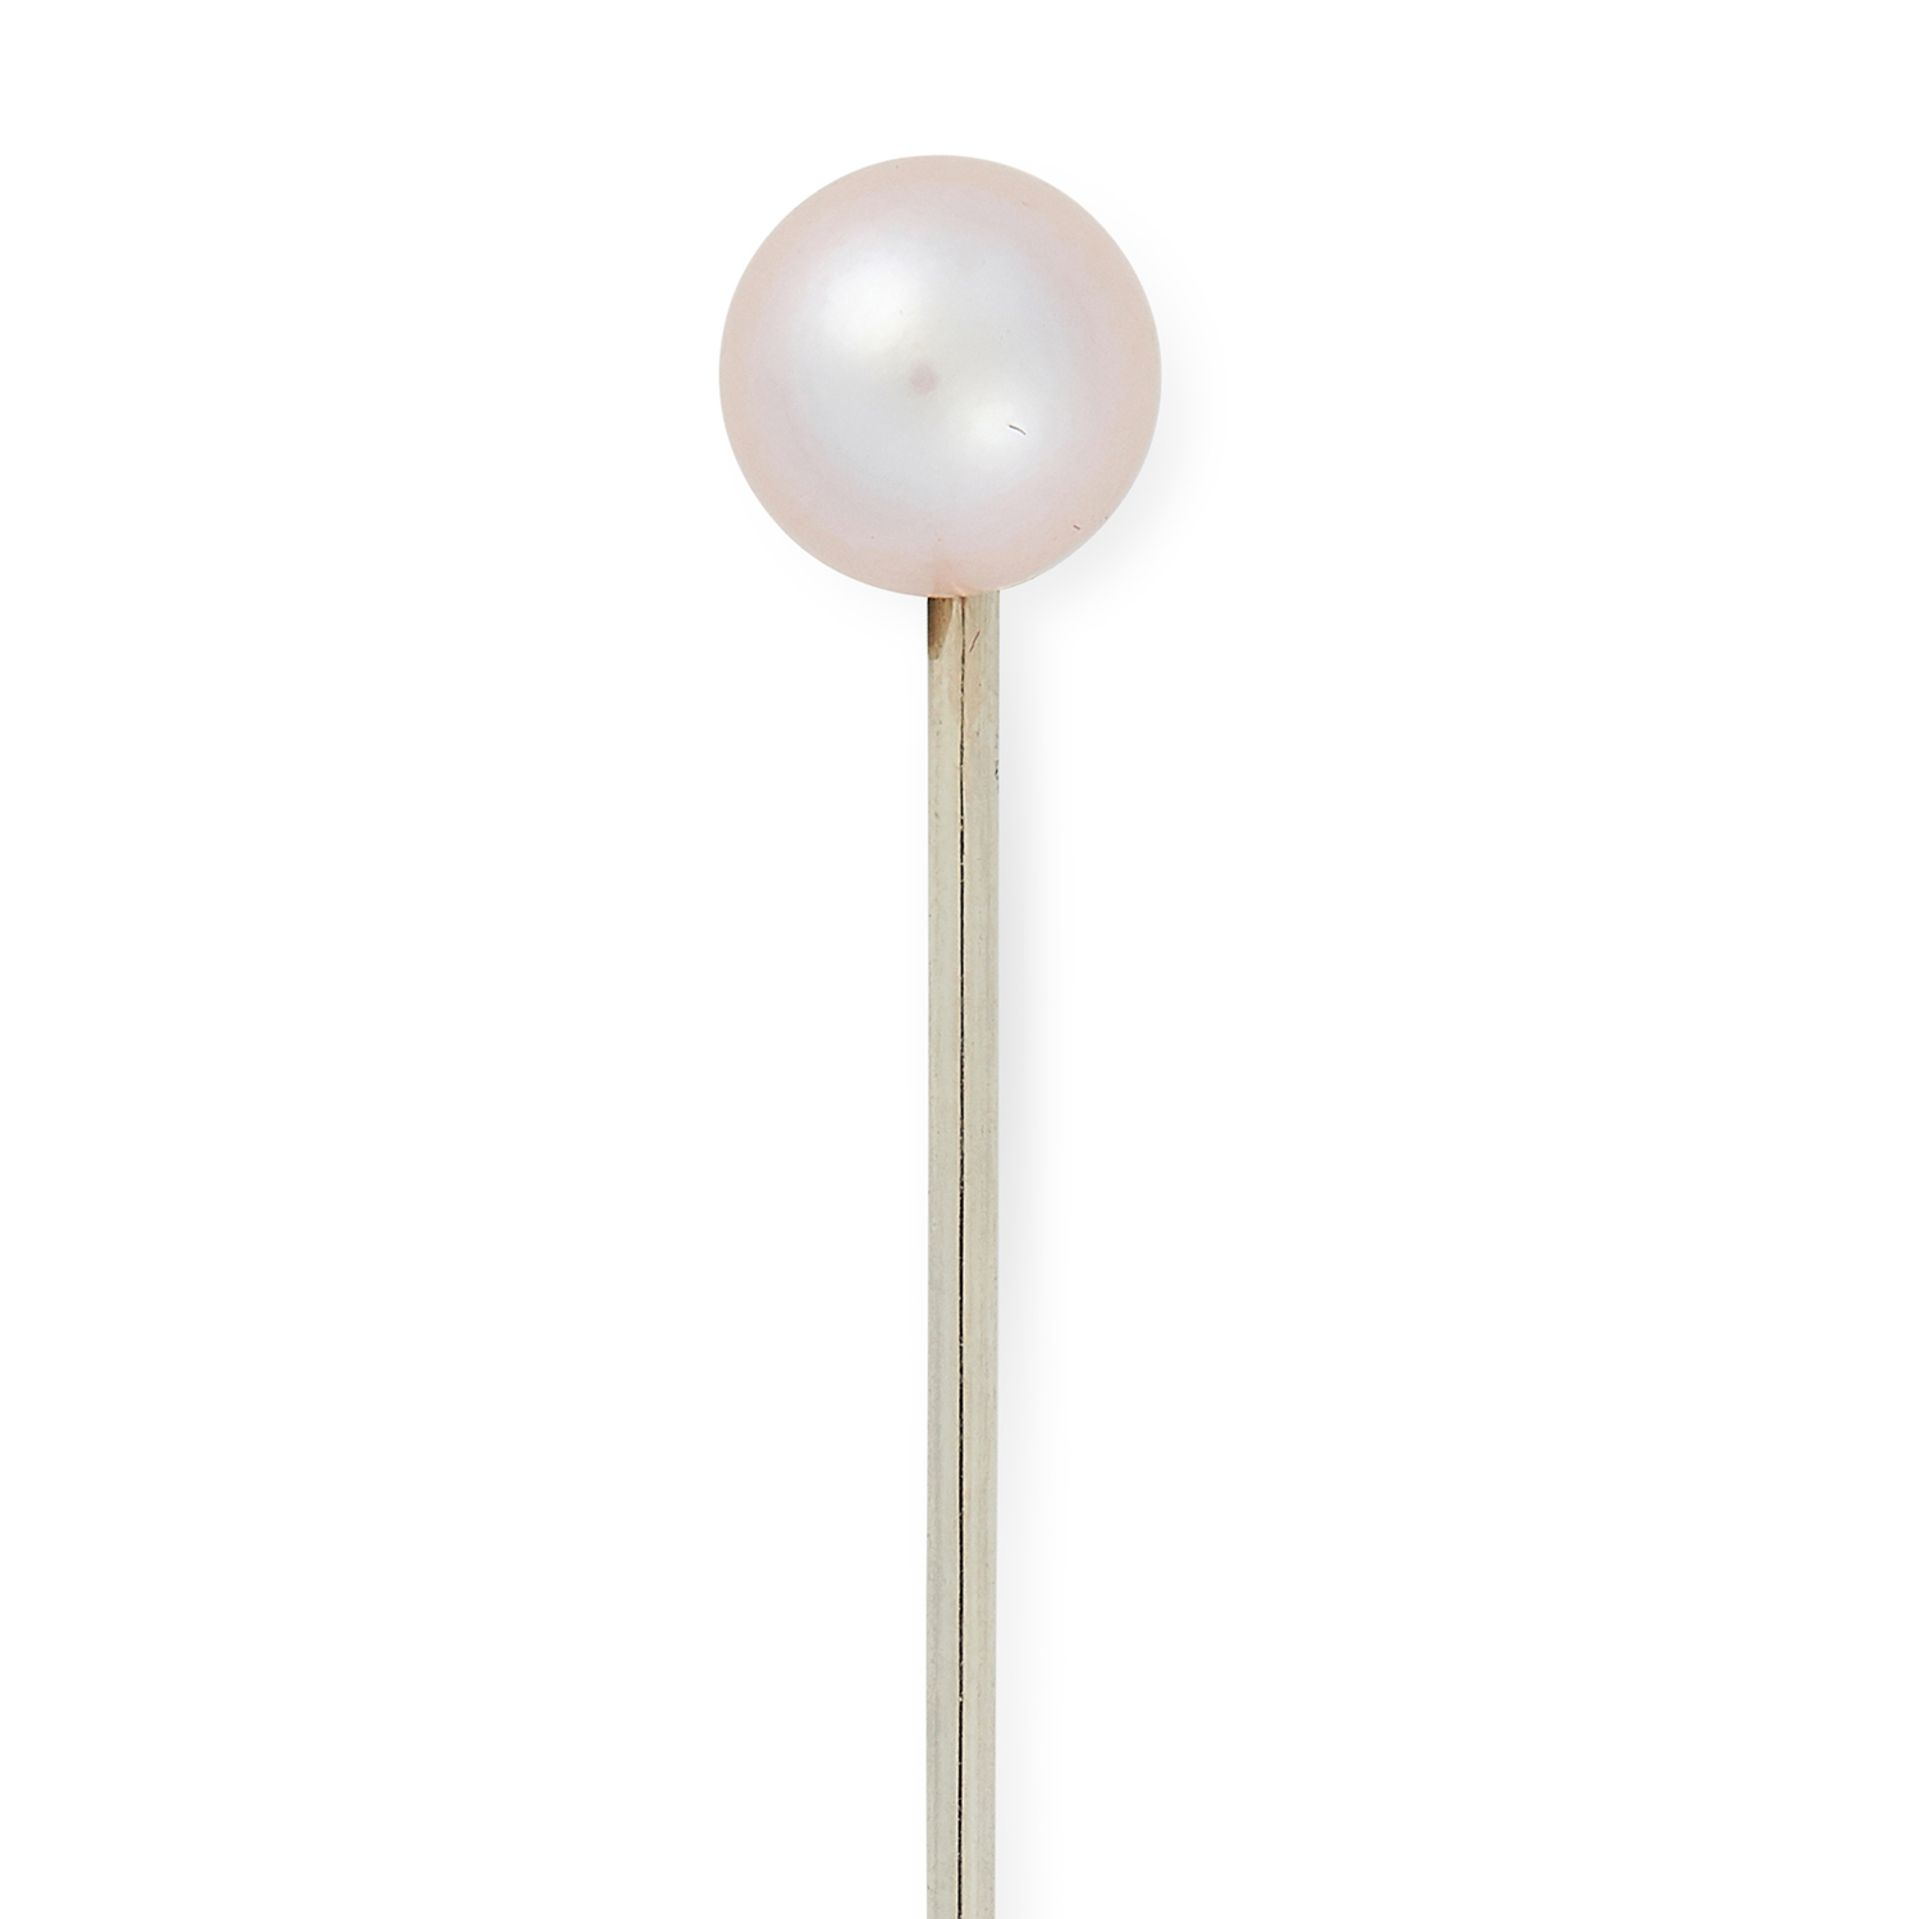 NATURAL SALTWATER PEARL TIE PIN set with a natural saltwater pearl, 6.3cm, 2.2g. - Bild 2 aus 2